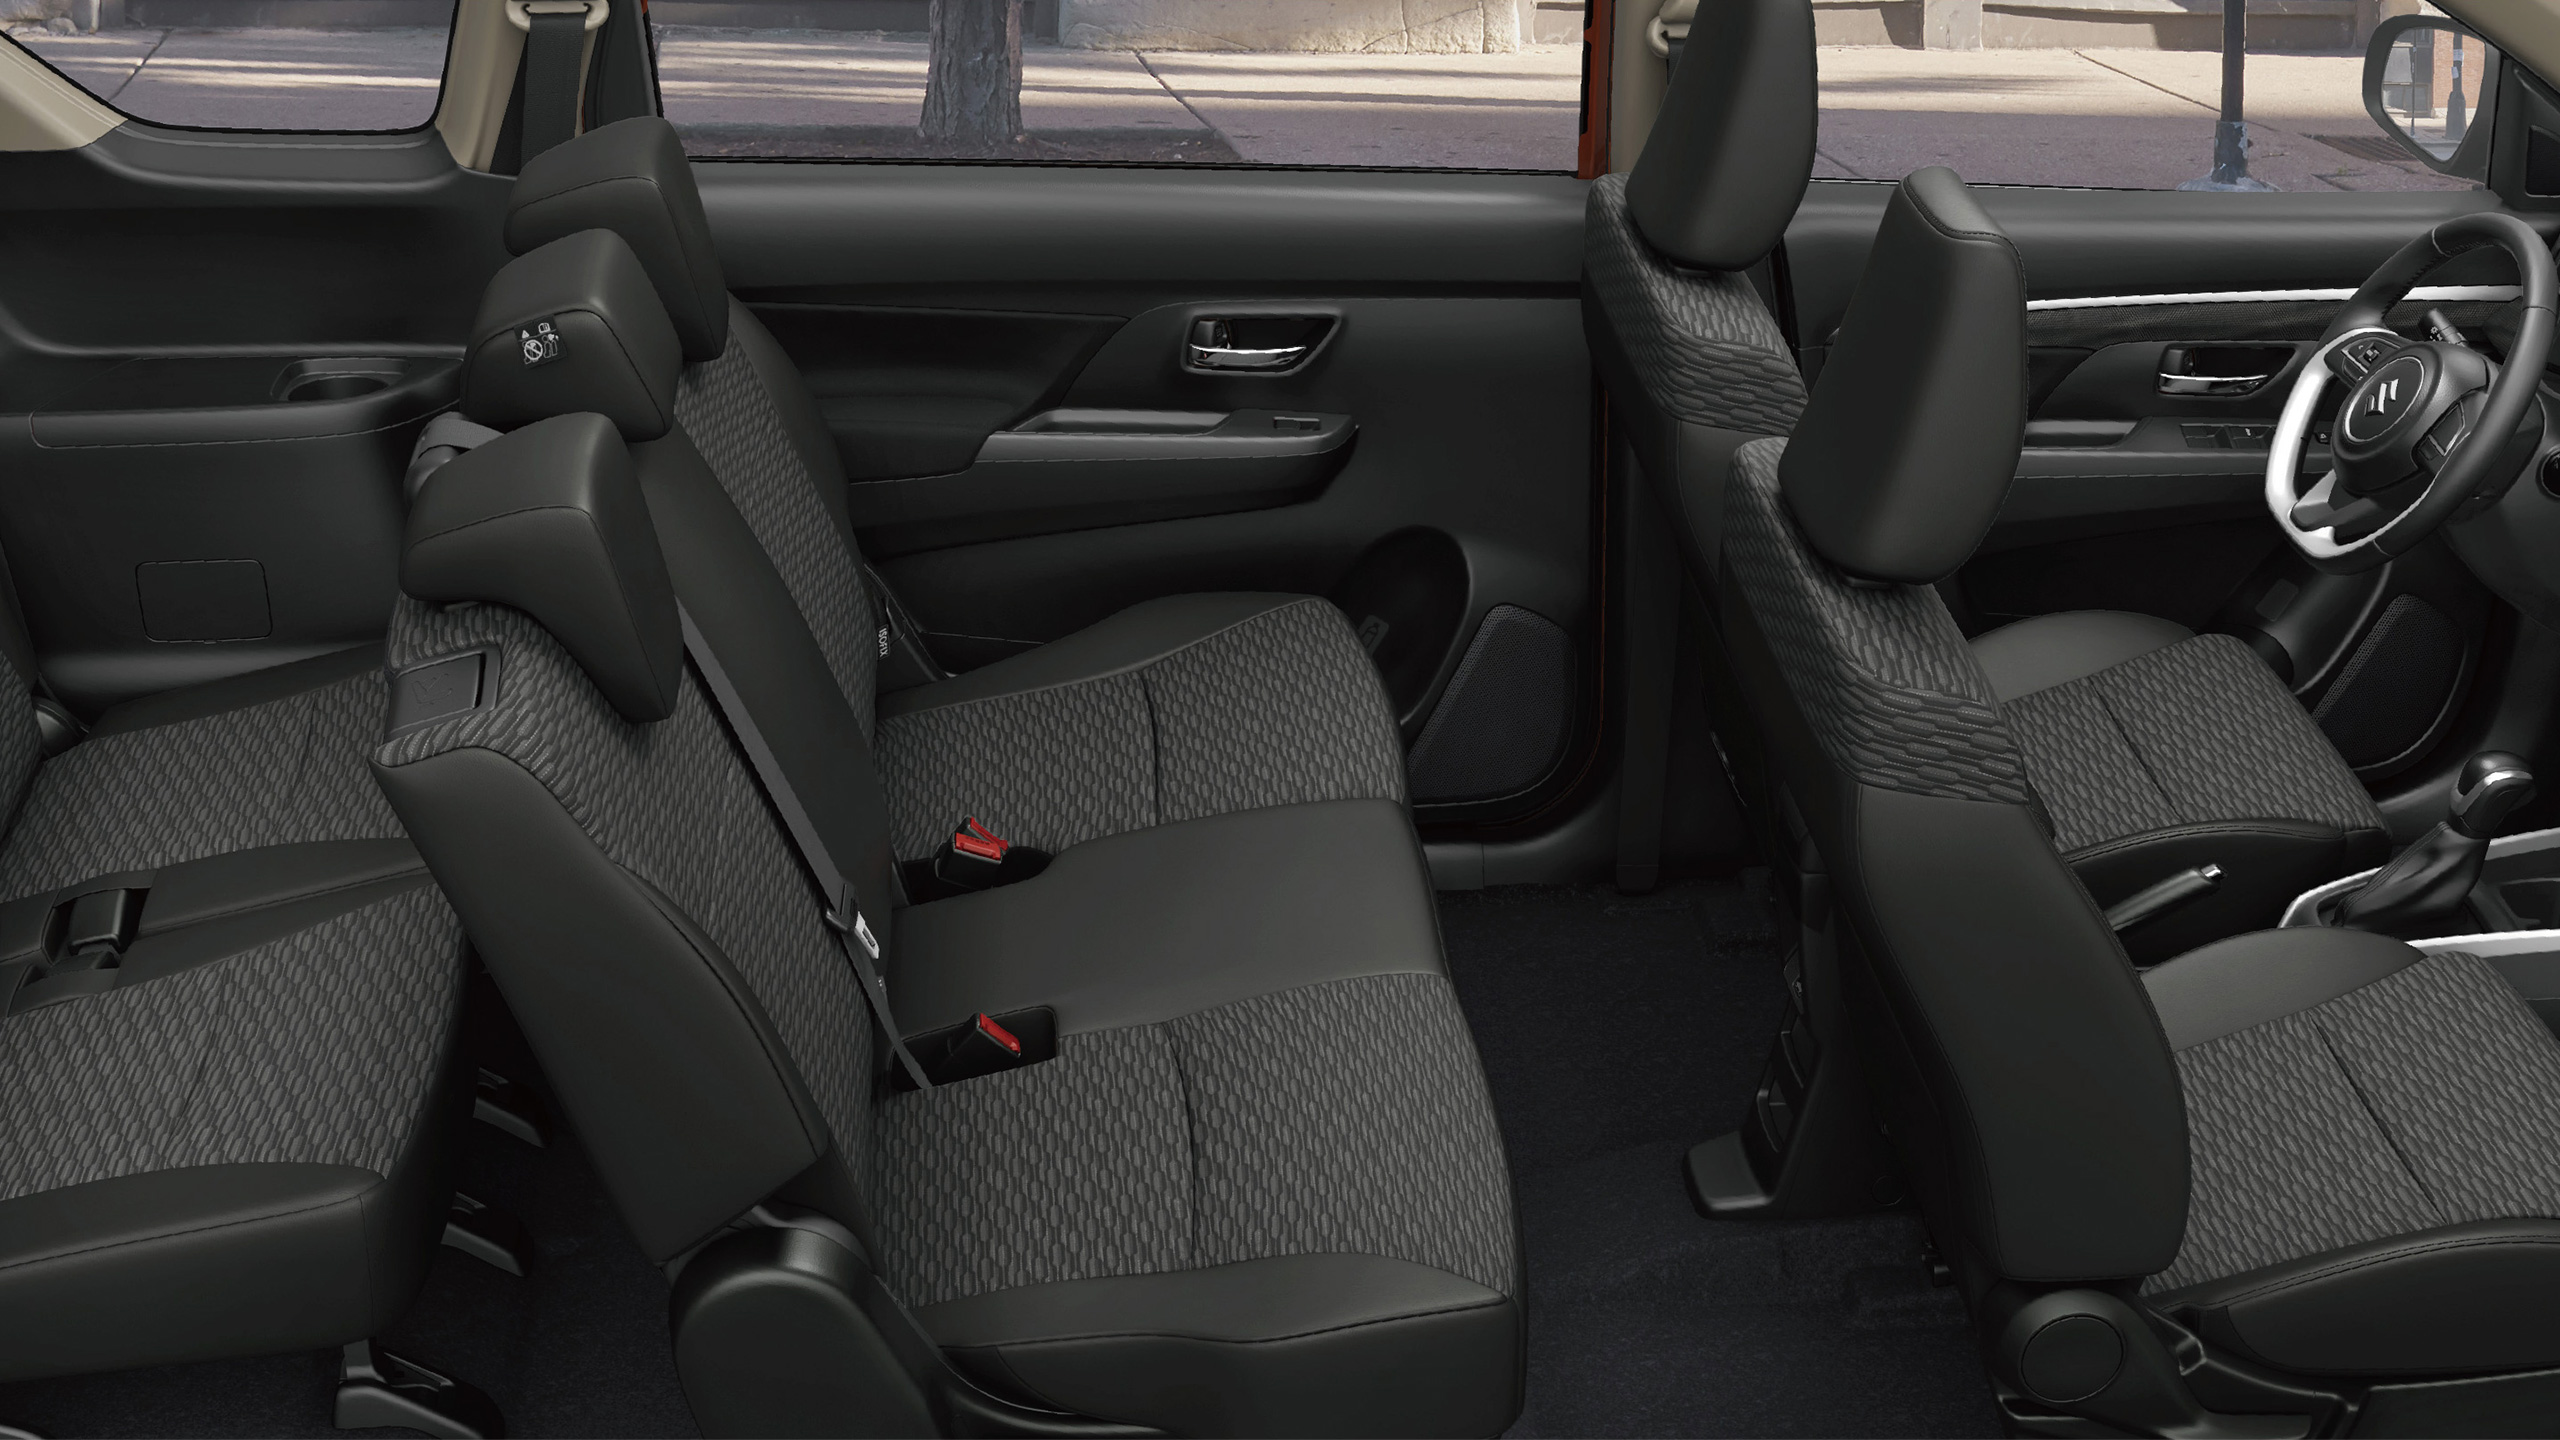 XL7-interior-with-seven-seats-side-view